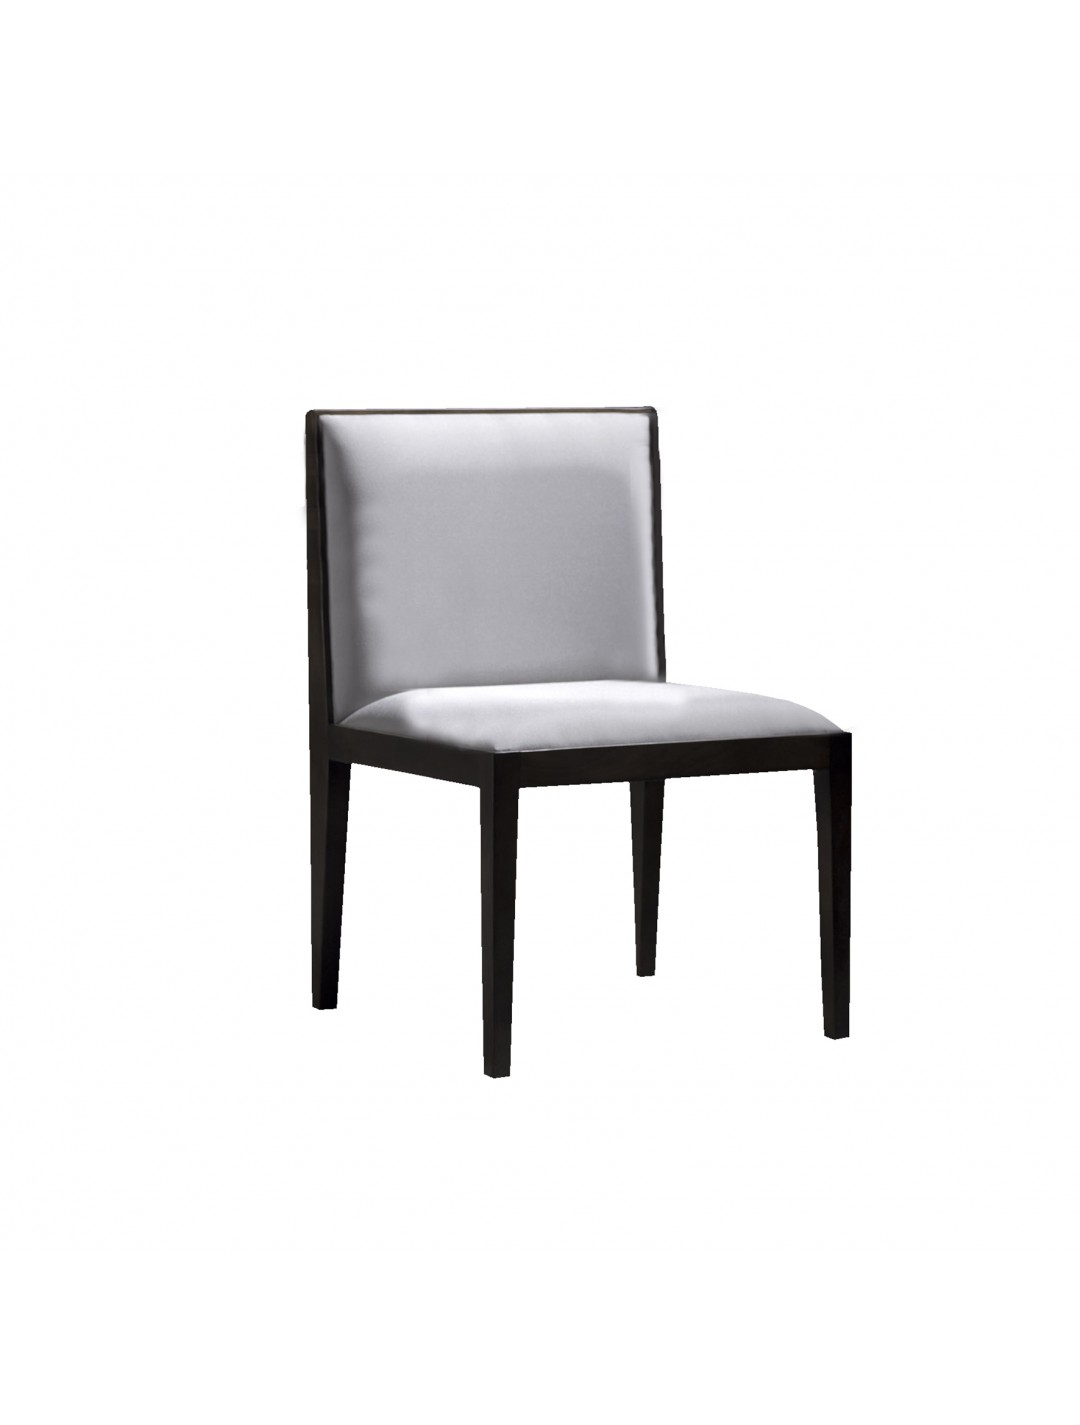 EVITA DINING CHAIR, C.O.M.